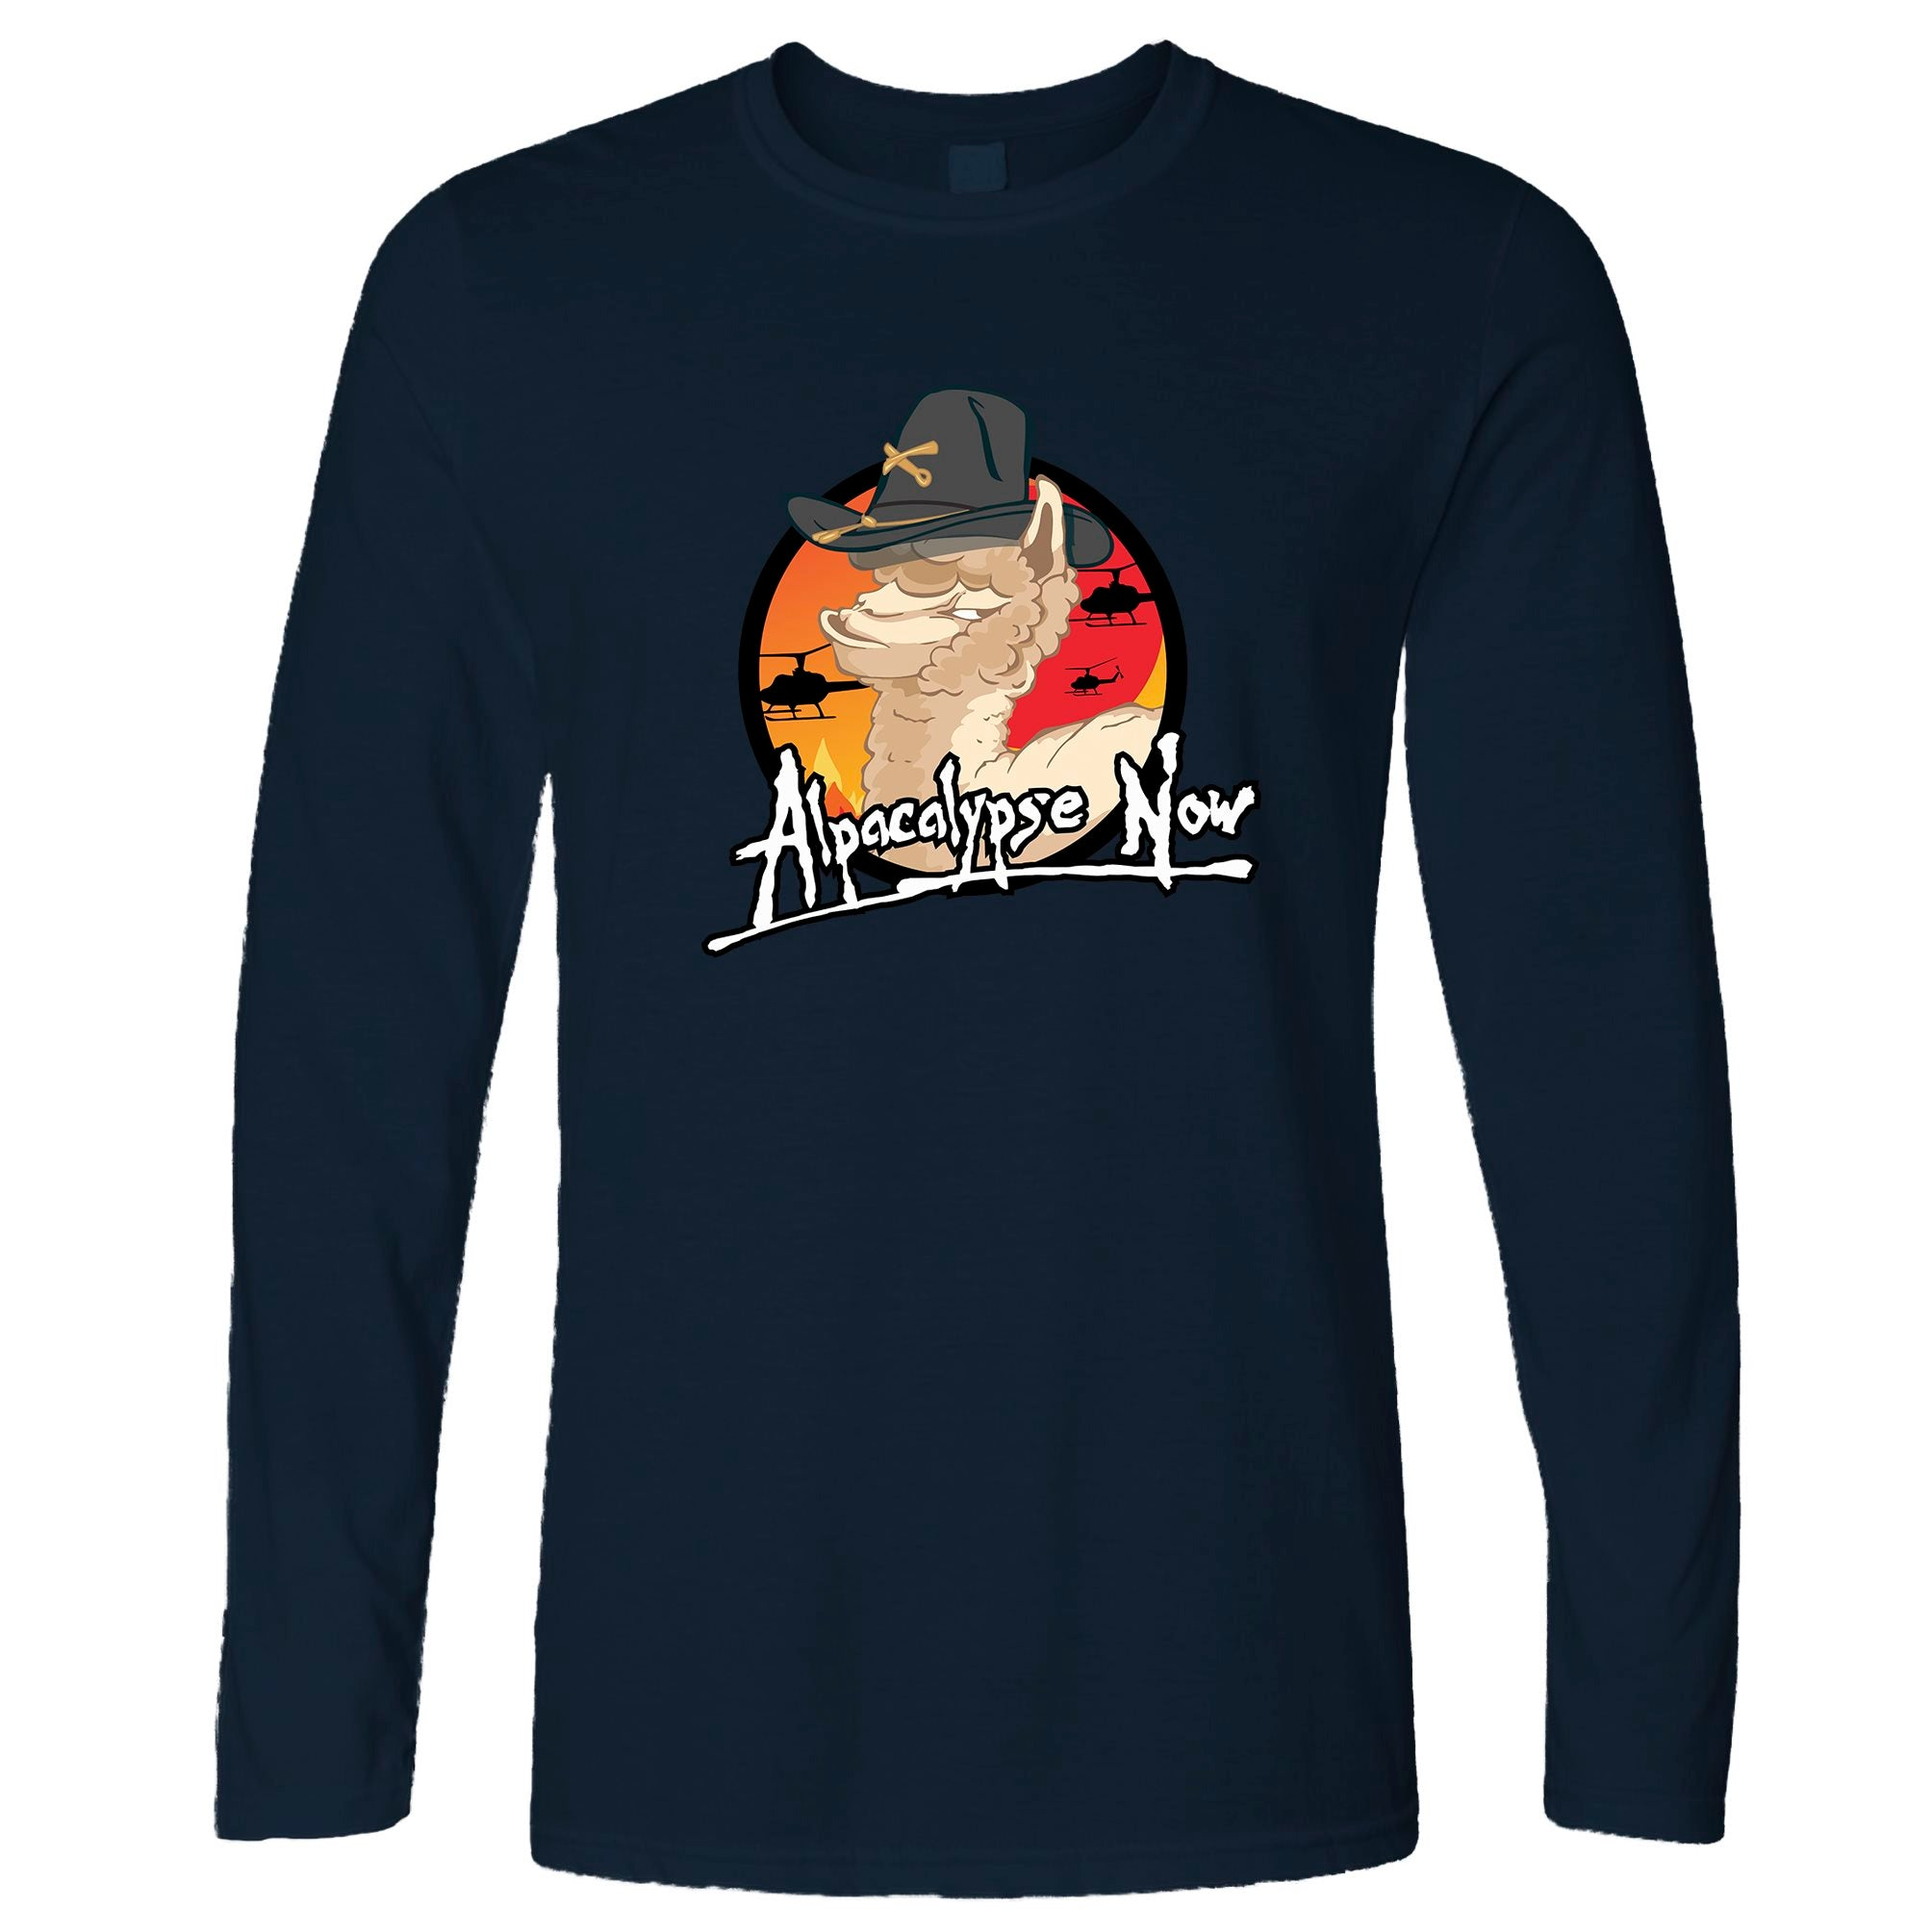 Film Parody Long Sleeve Alpacalypse Now Alpaca Vegan T-Shirt